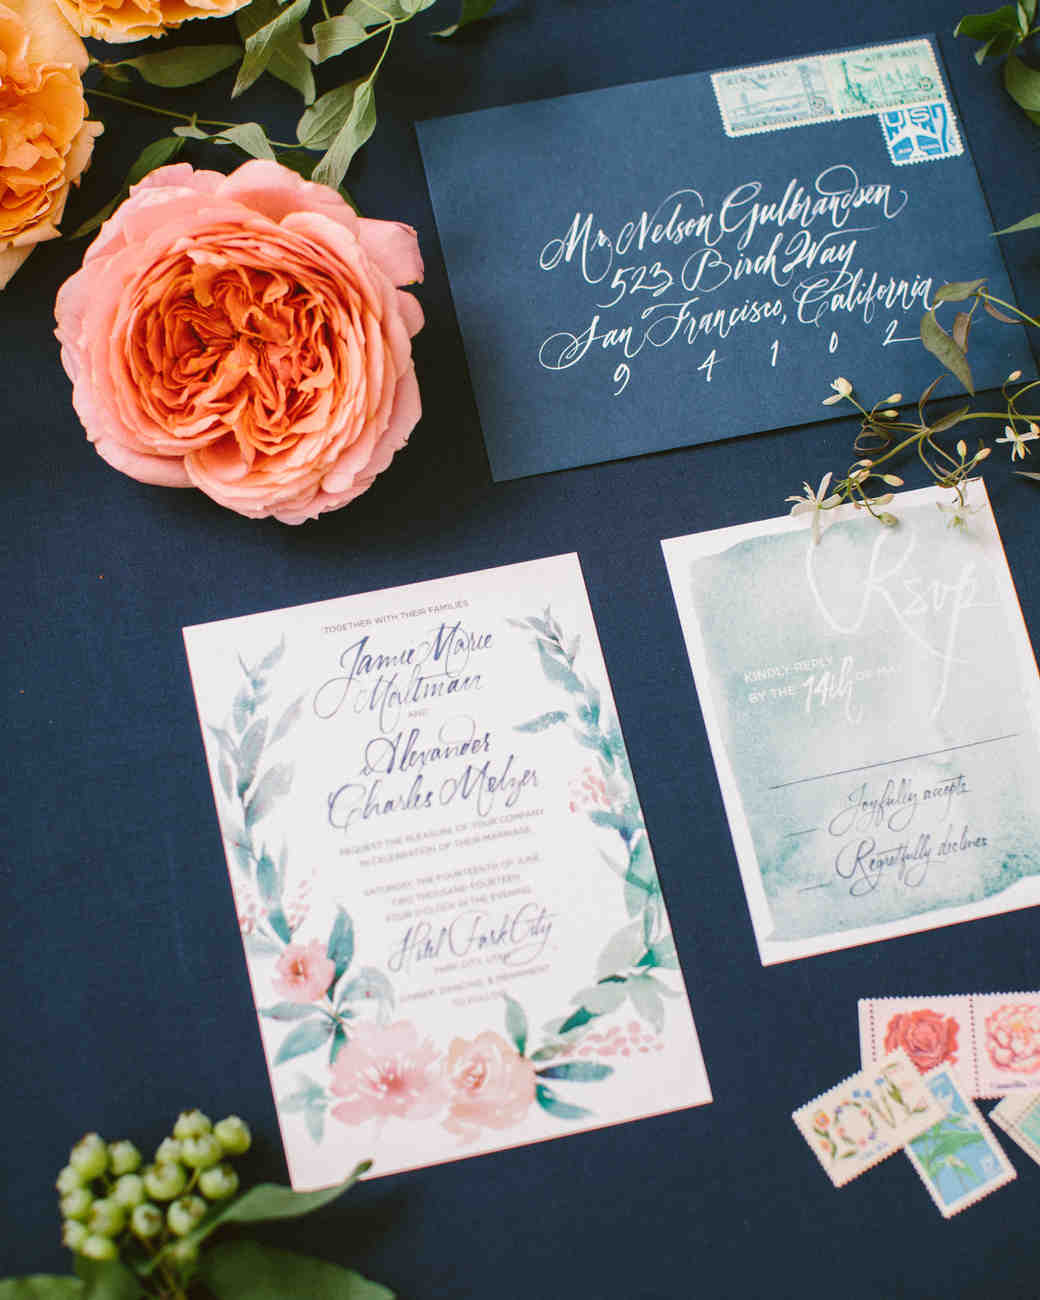 Addressing Wedding Invitations To Hookup Couples